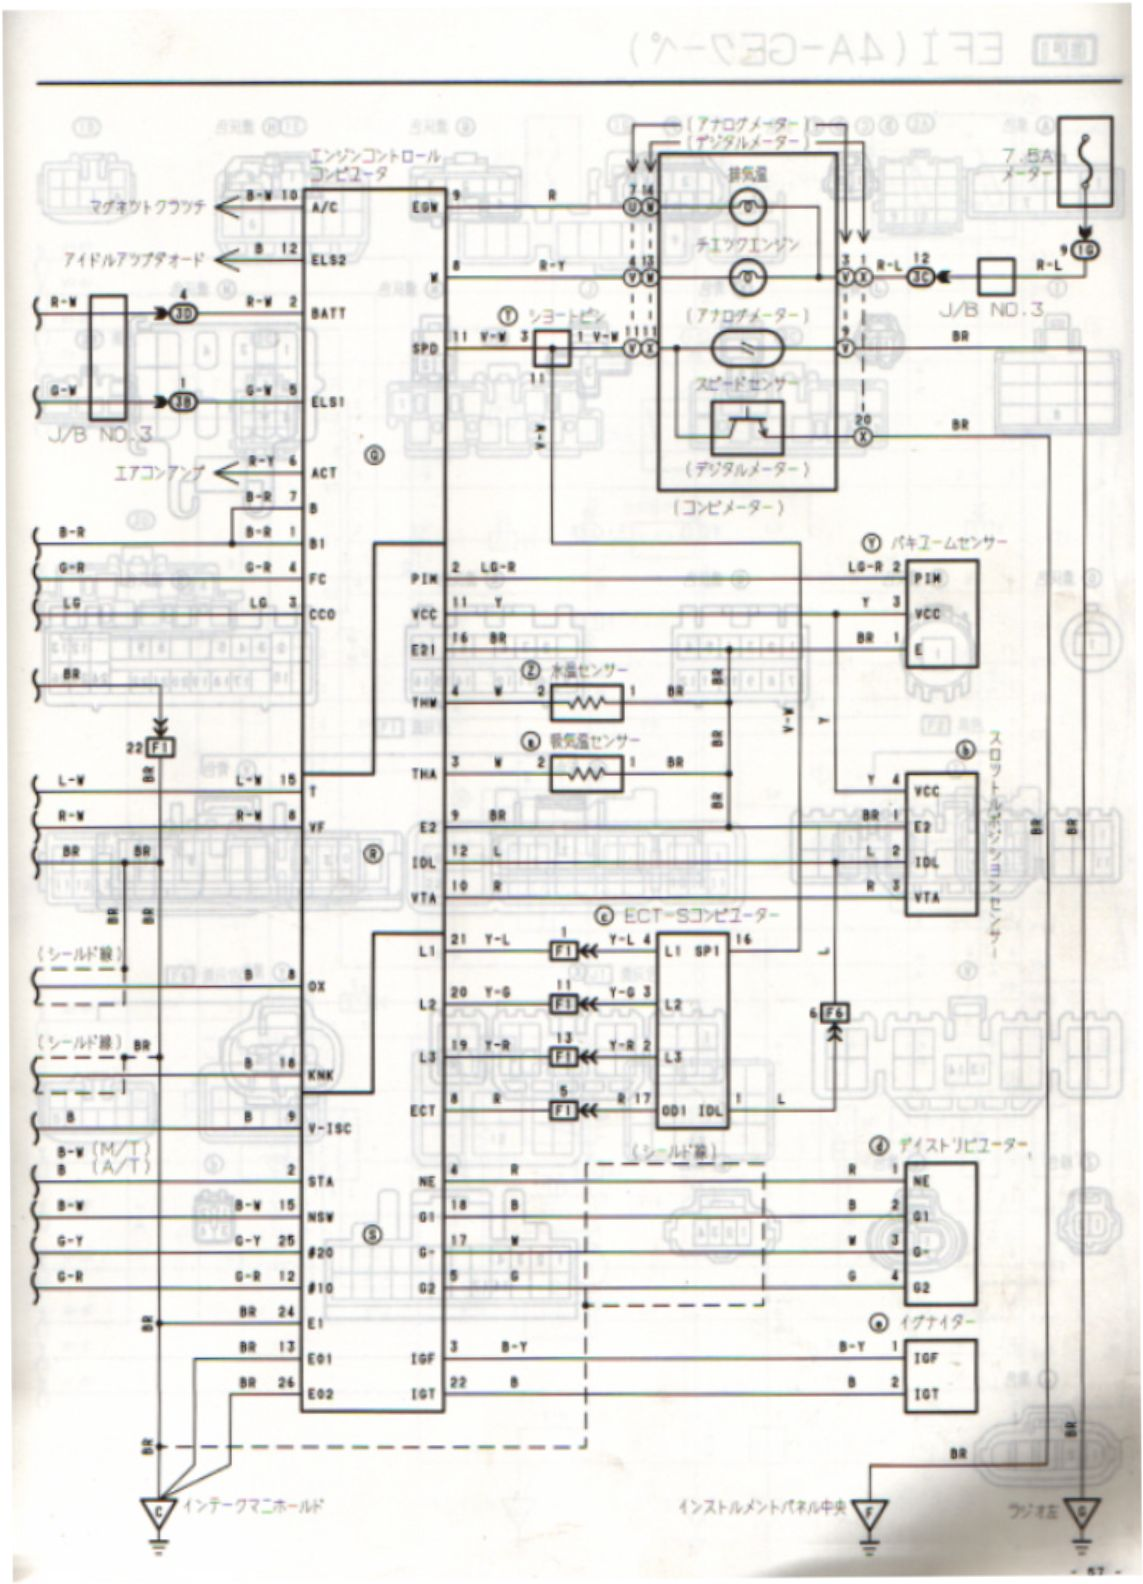 4age wiring diagram efcaviation com 4age blacktop 20v wiring diagram pdf at edmiracle.co